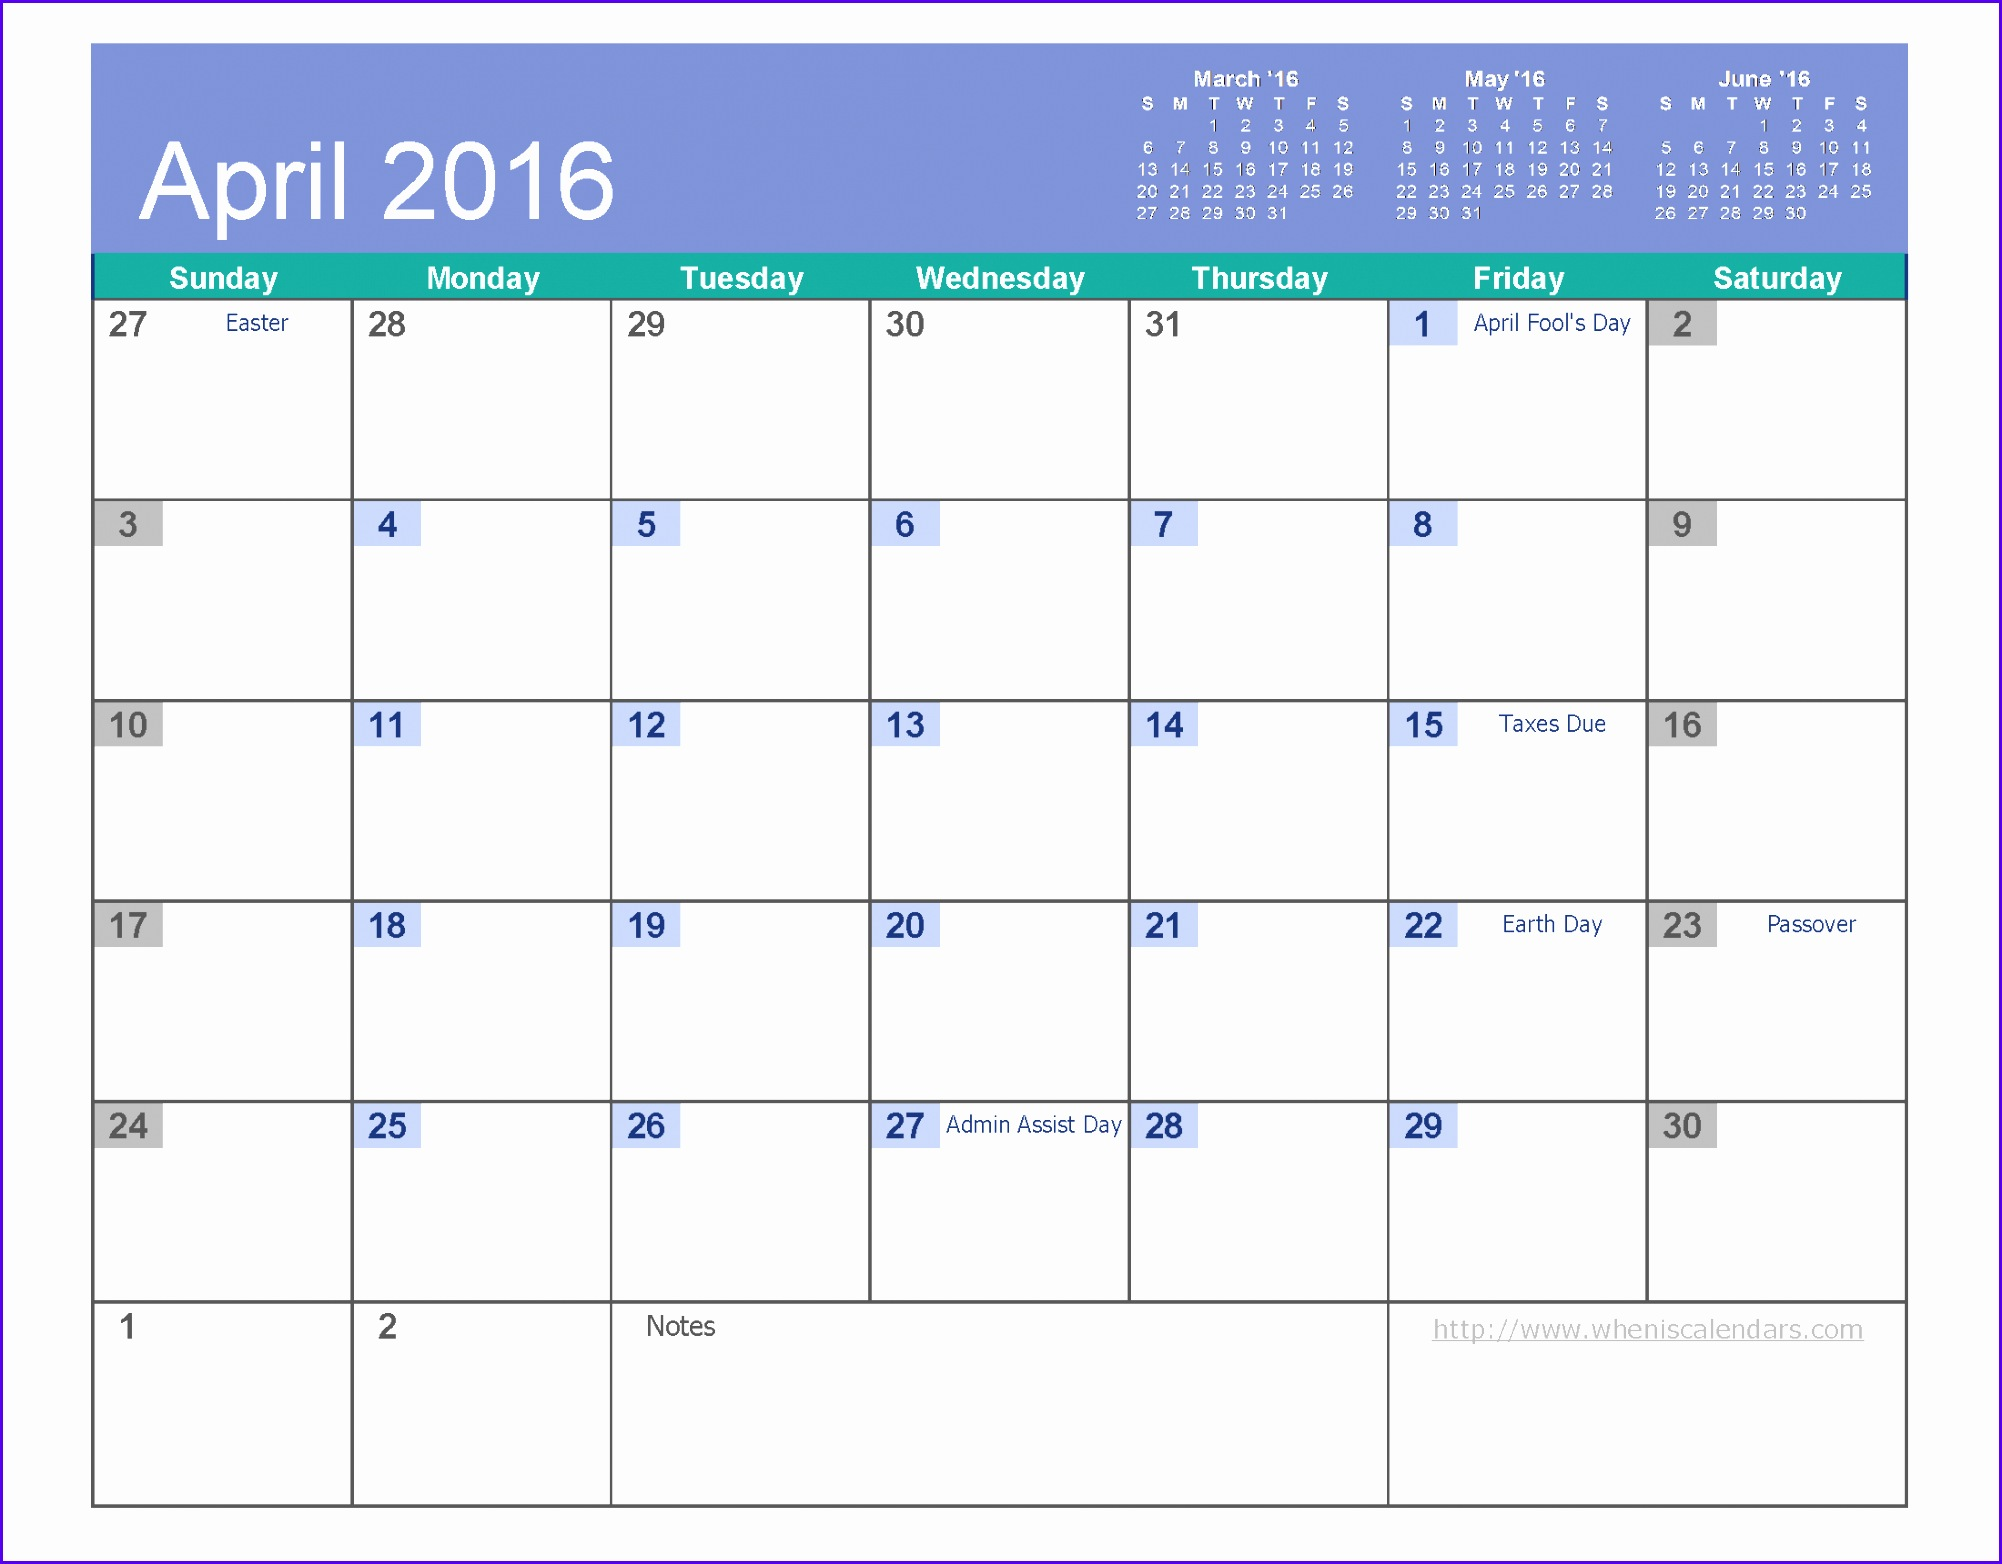 Examples Download Excel Calendar Template Rhunk Awesome April 2016 Calendar Free Printable 6 Templates Pdf Excel 22001701